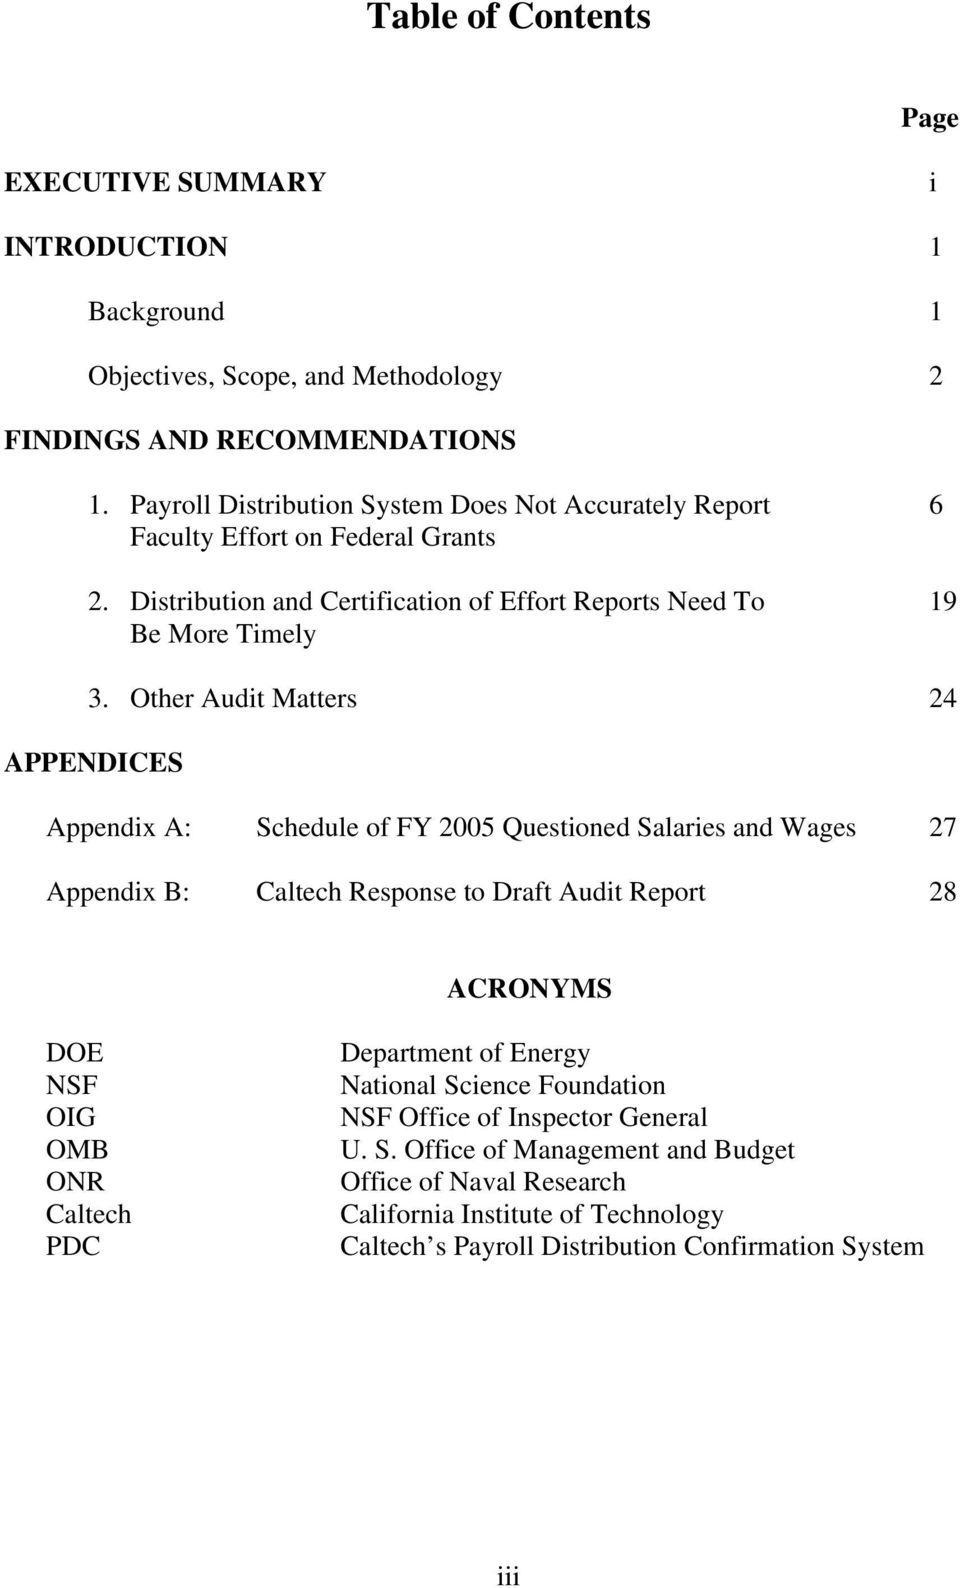 Other Audit Matters 24 APPENDICES Appendix A: Schedule of FY 2005 Questioned Salaries and Wages 27 Appendix B: Caltech Response to Draft Audit Report 28 ACRONYMS DOE NSF OIG OMB ONR